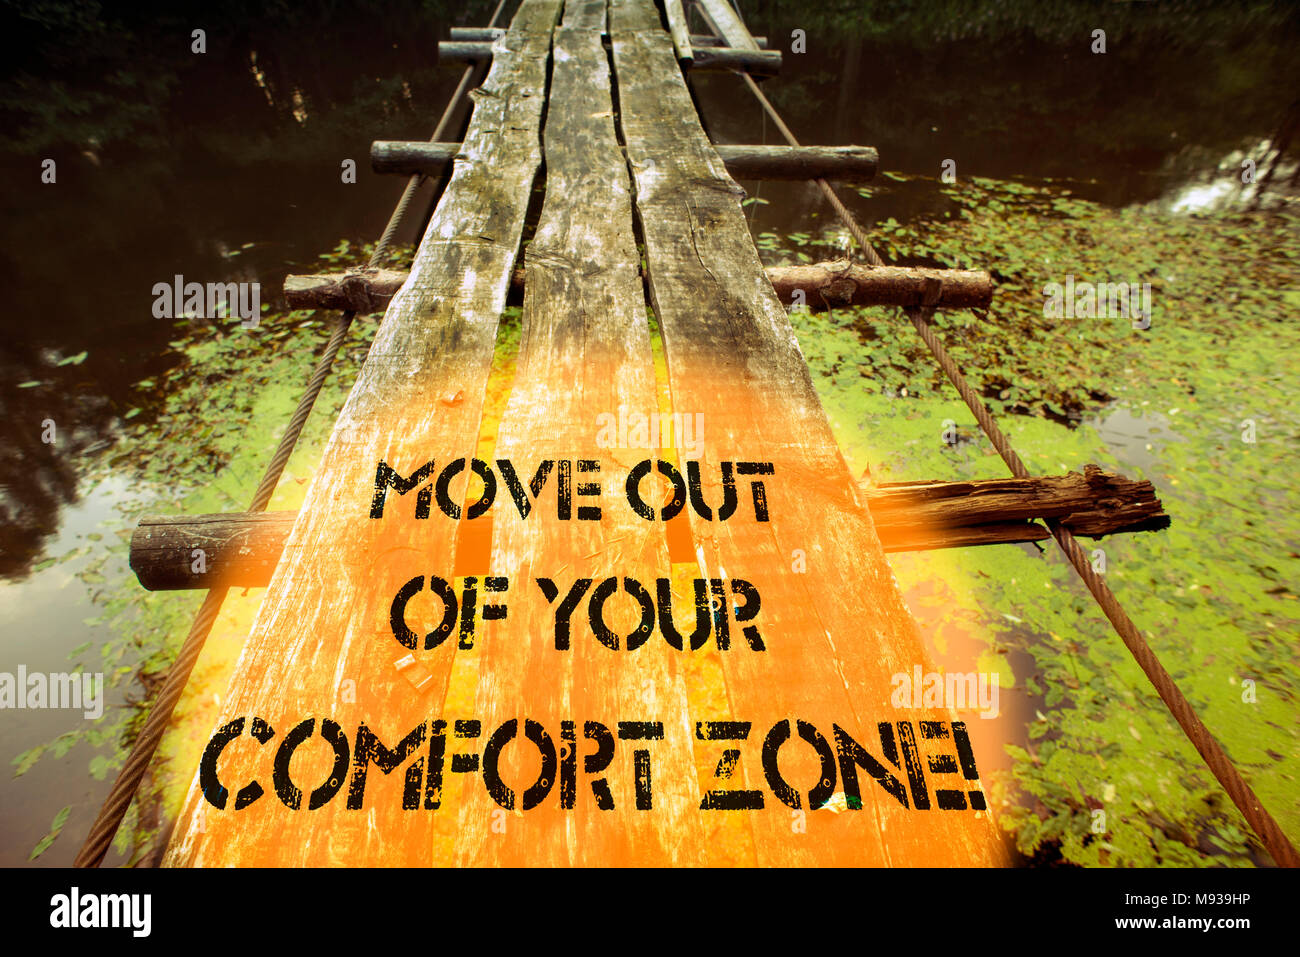 move out of your comfort zone written with ruined wooden bridge fragment over forest river waters Stock Photo